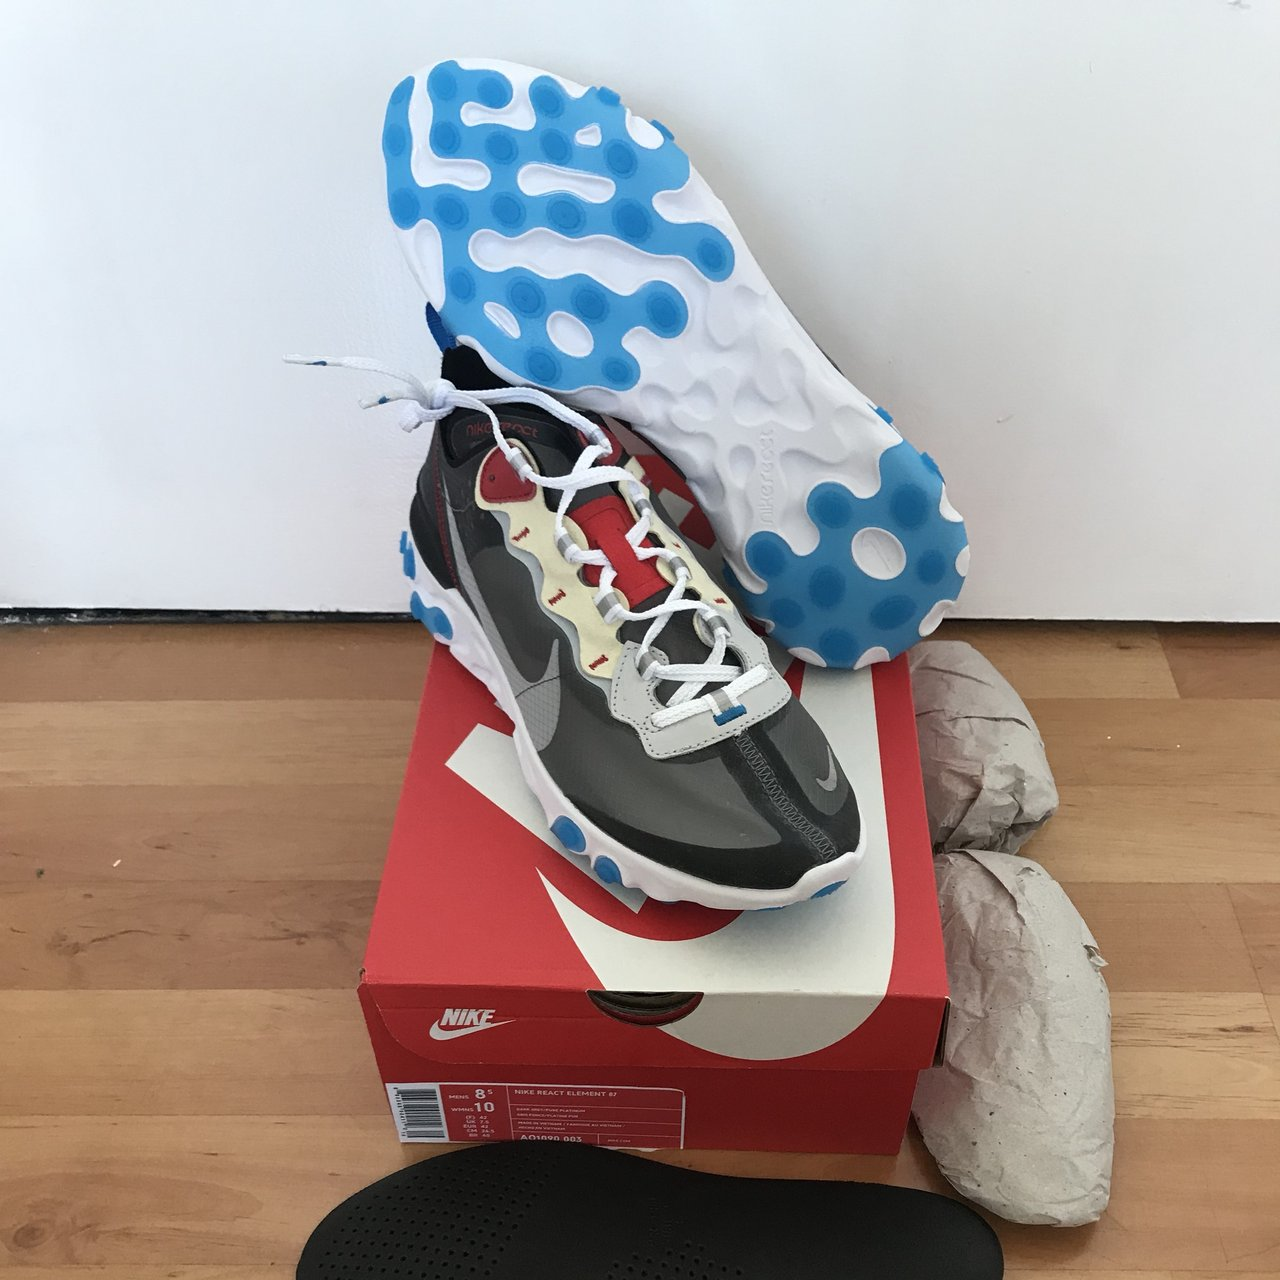 1e57b6315b7 Nike react element 87 (desert